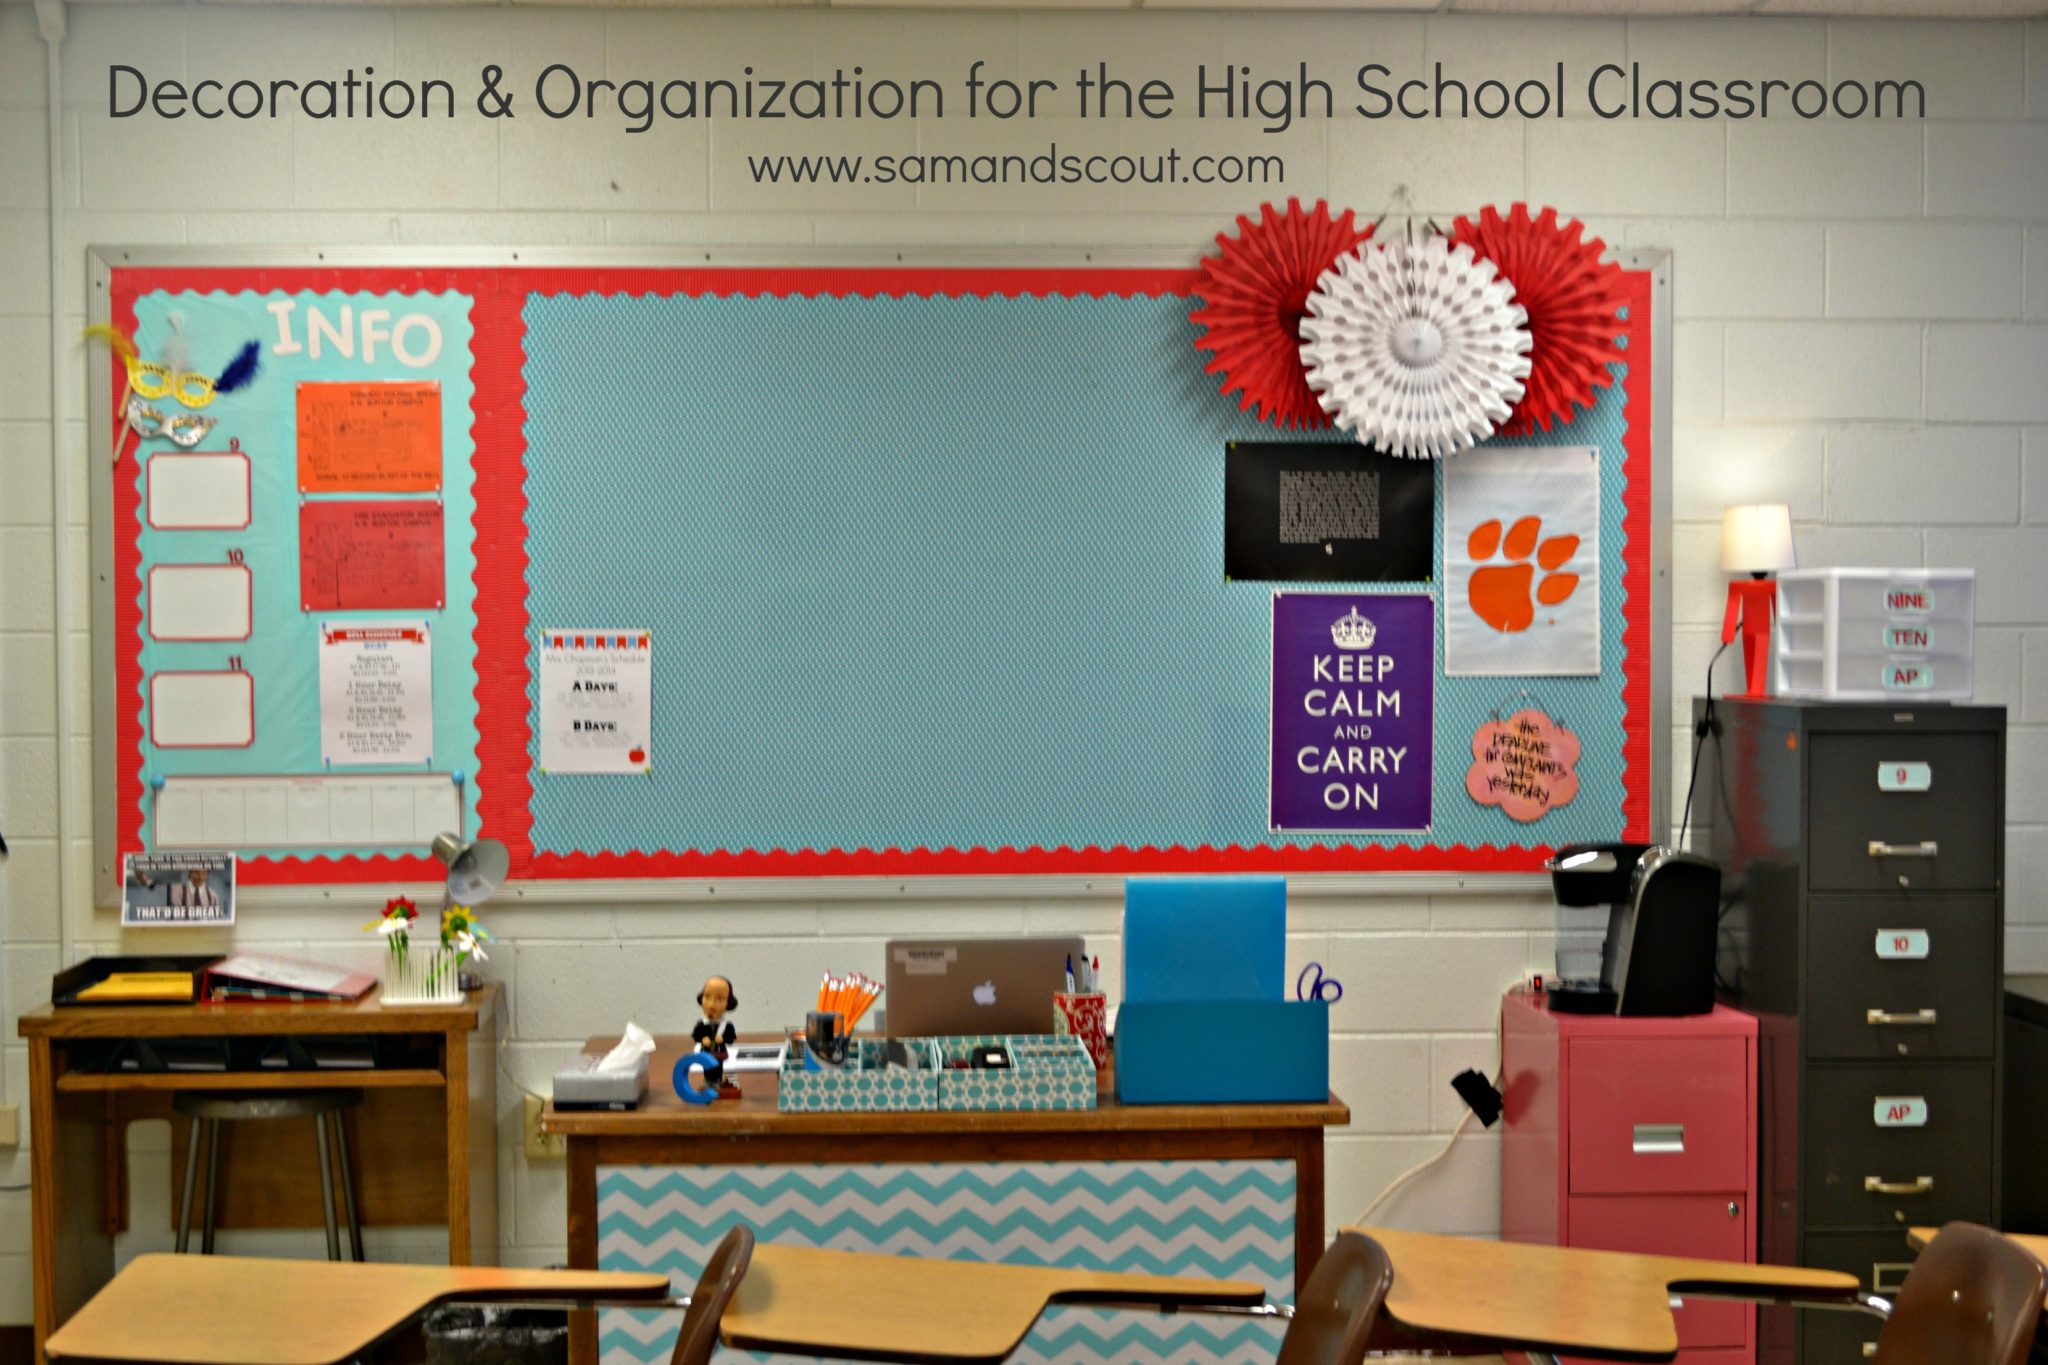 Science Classroom Decorations High School ~ Decoration organization for the high school classroom